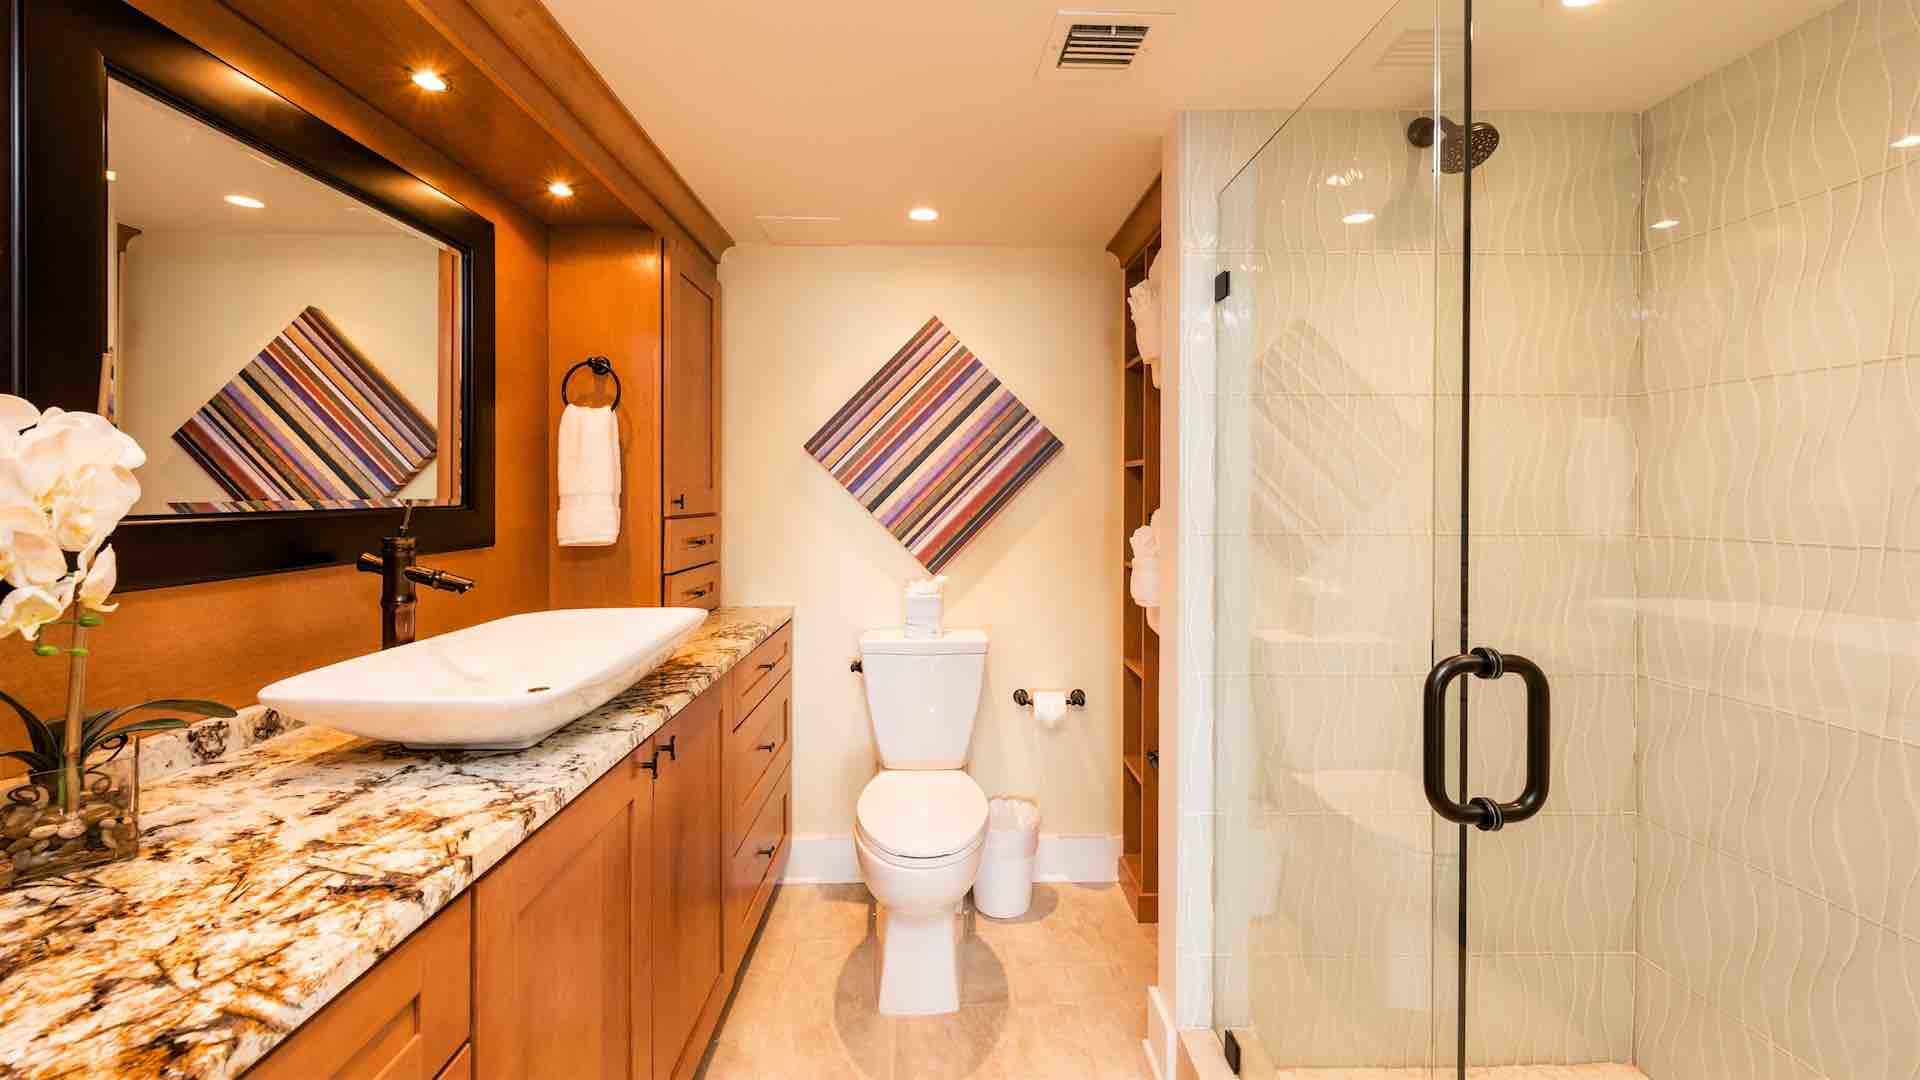 The en suite master bathroom has a large glass shower...